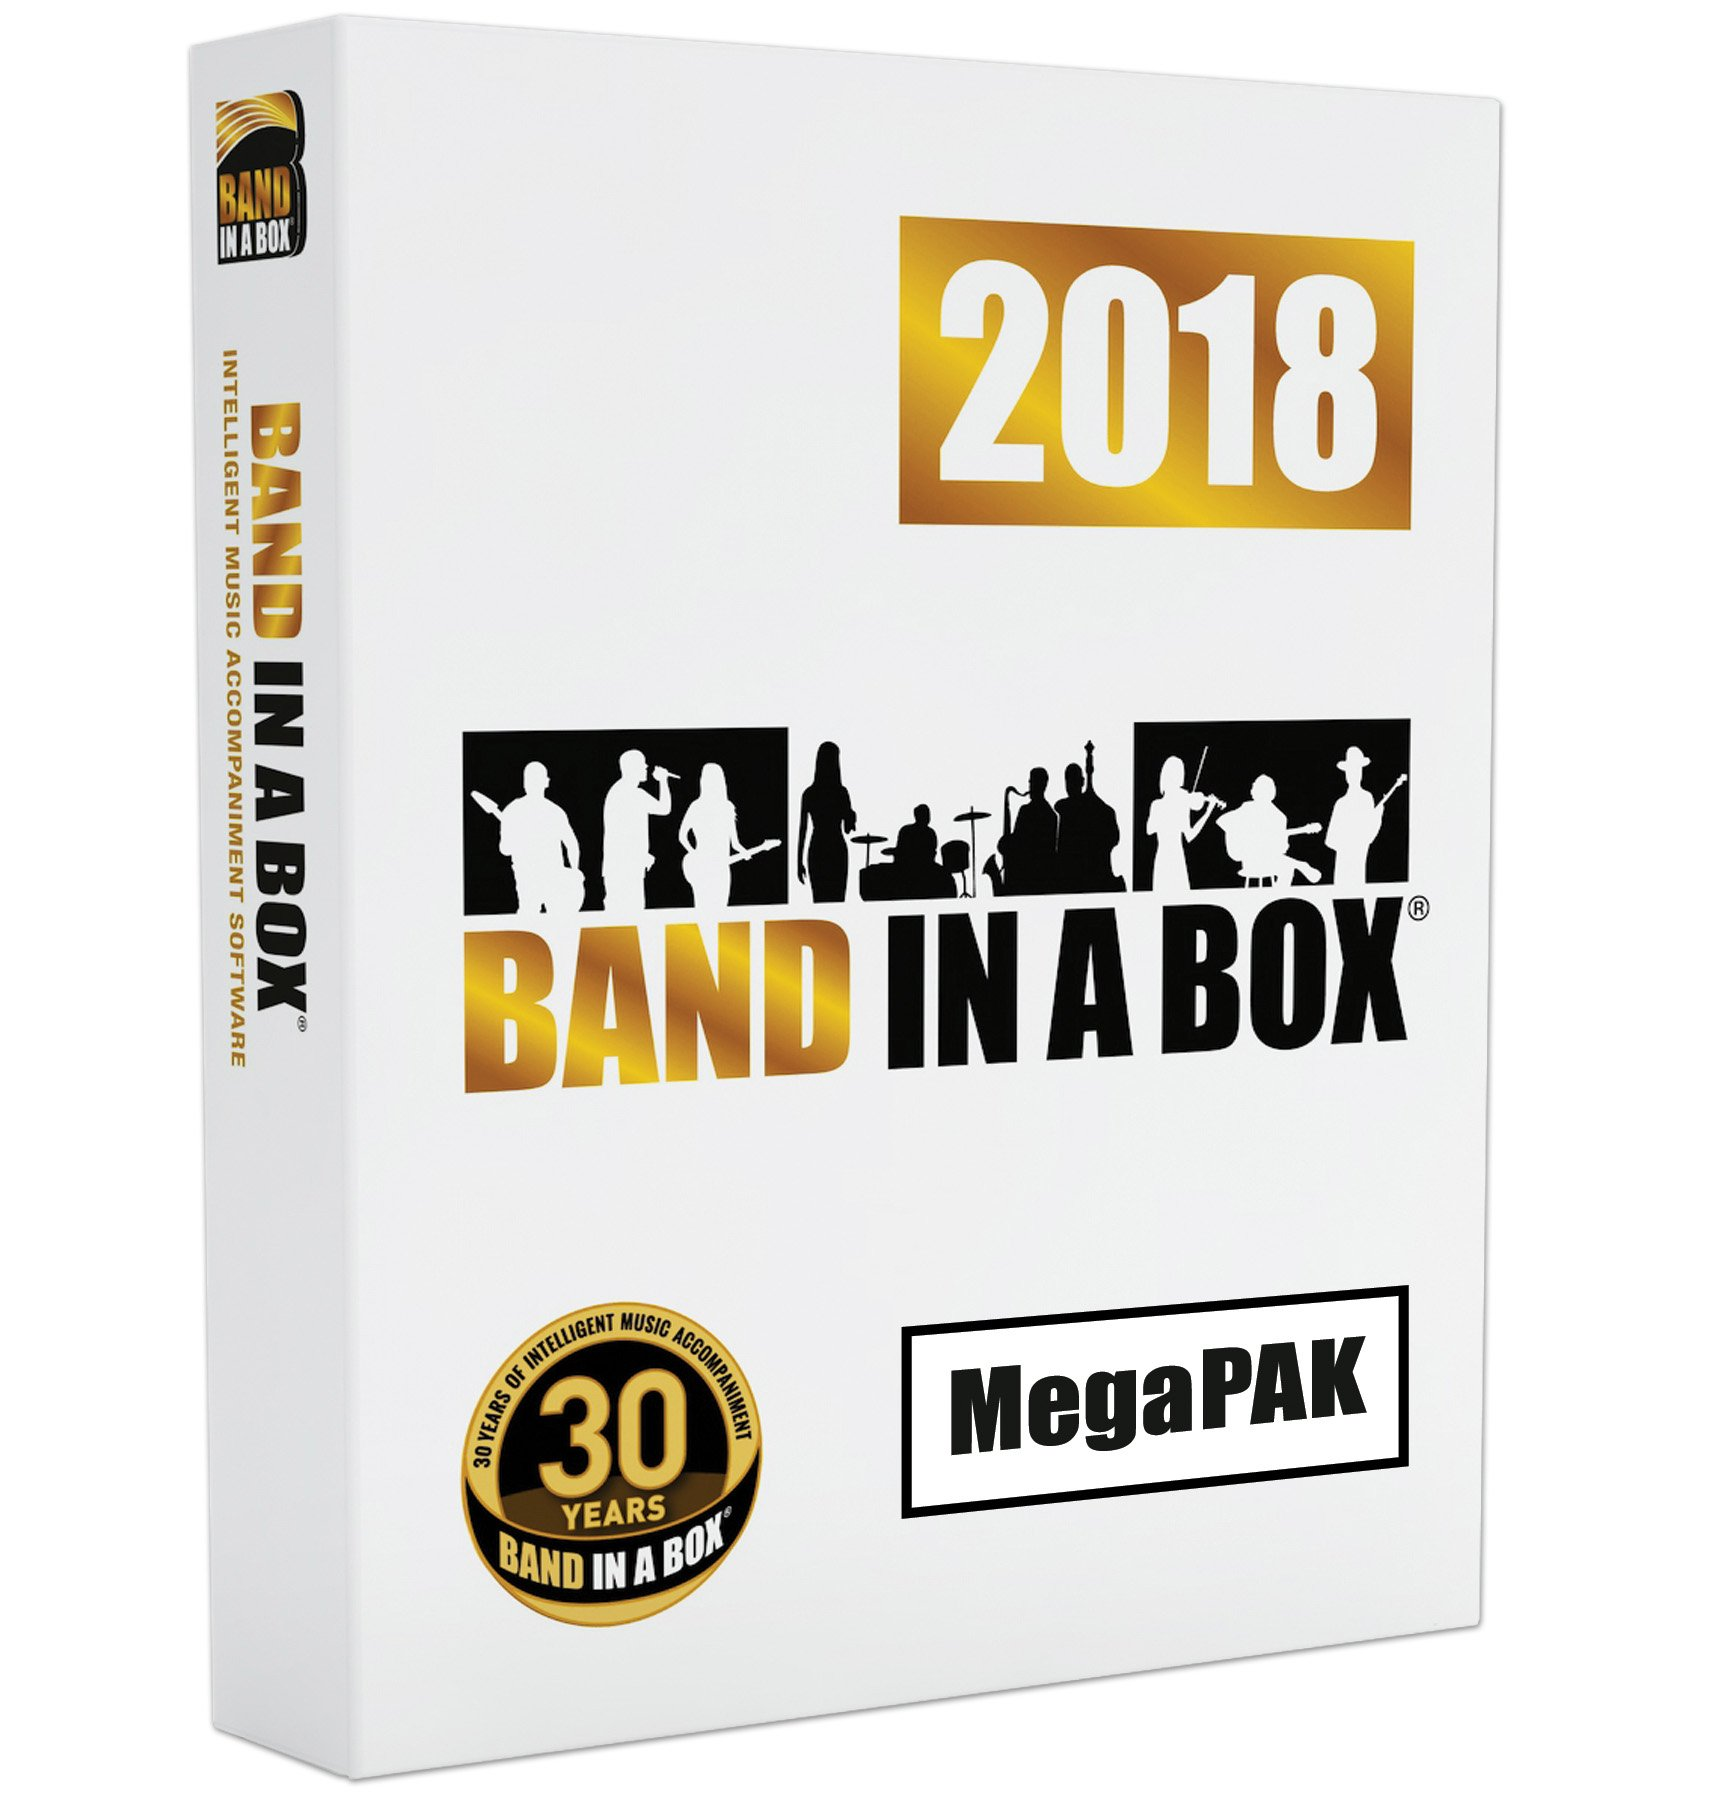 Band-in-a-Box 2018 MegaPAK [Mac DVD-ROM] - Create your own backing tracks by PG Music Inc.